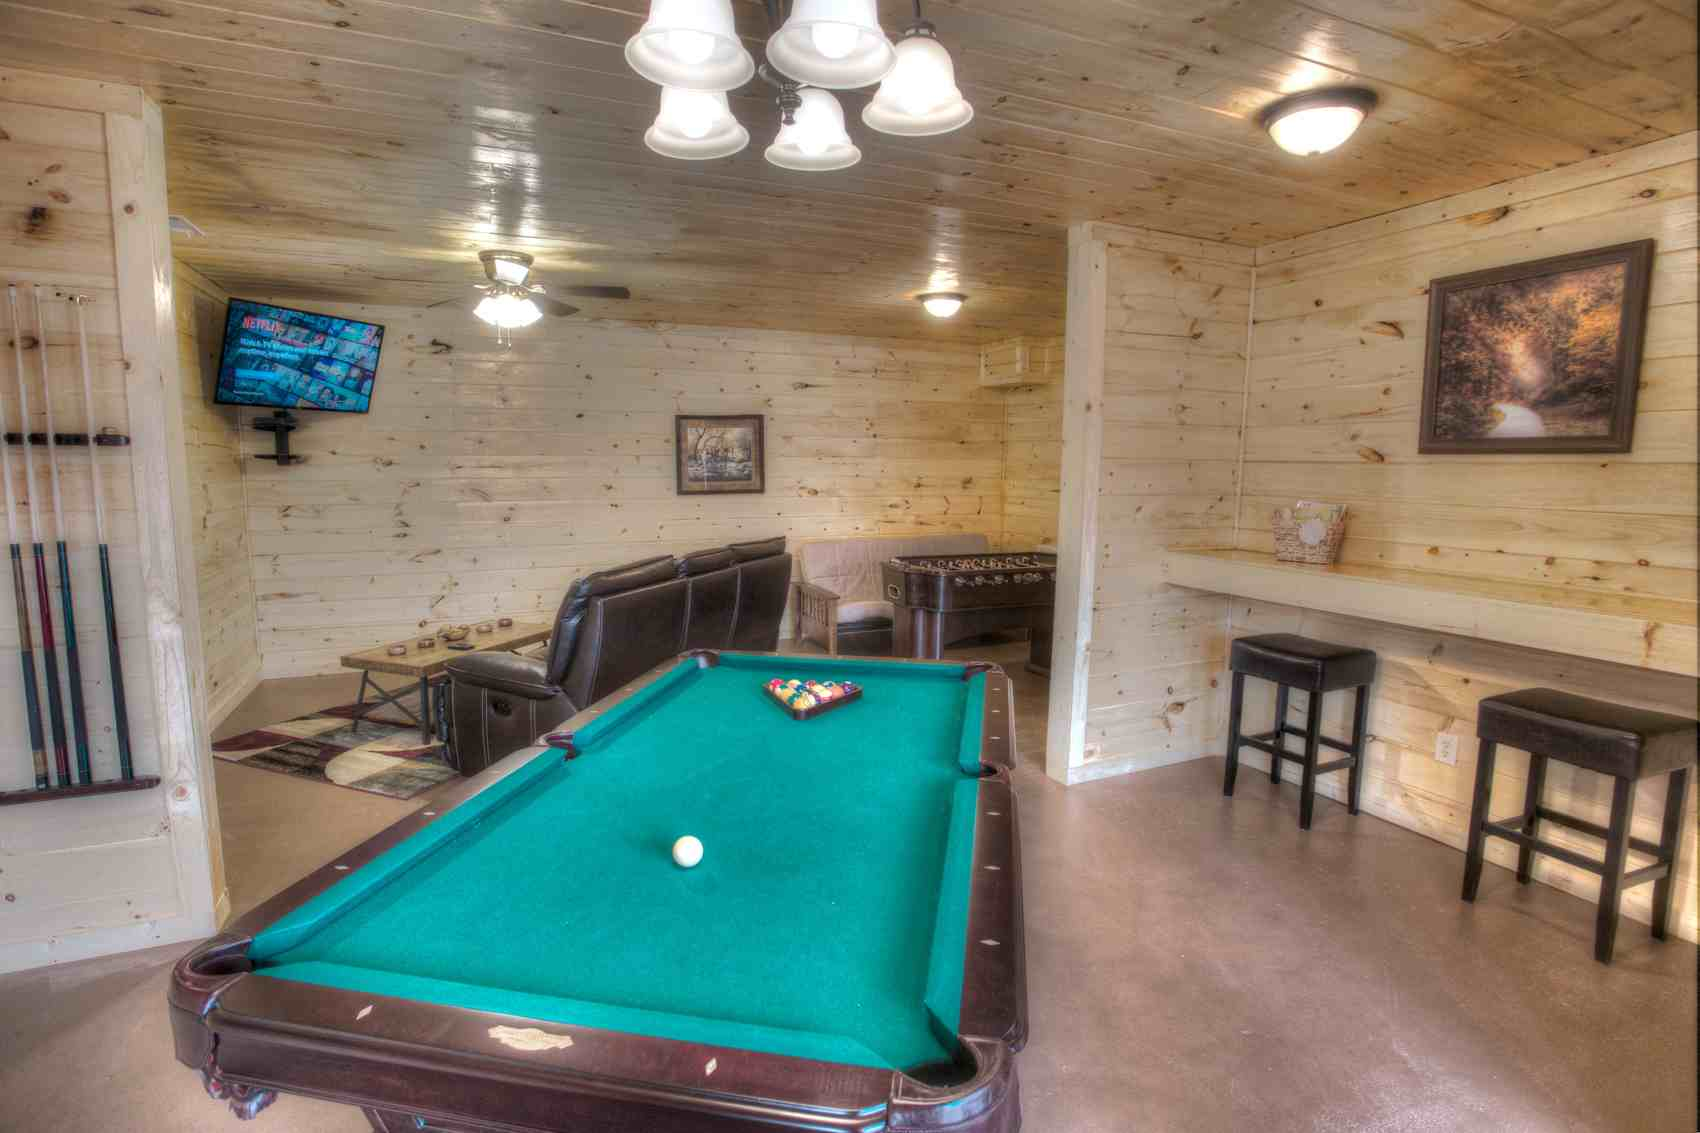 Newly Remodeled Downstairs Pool Table